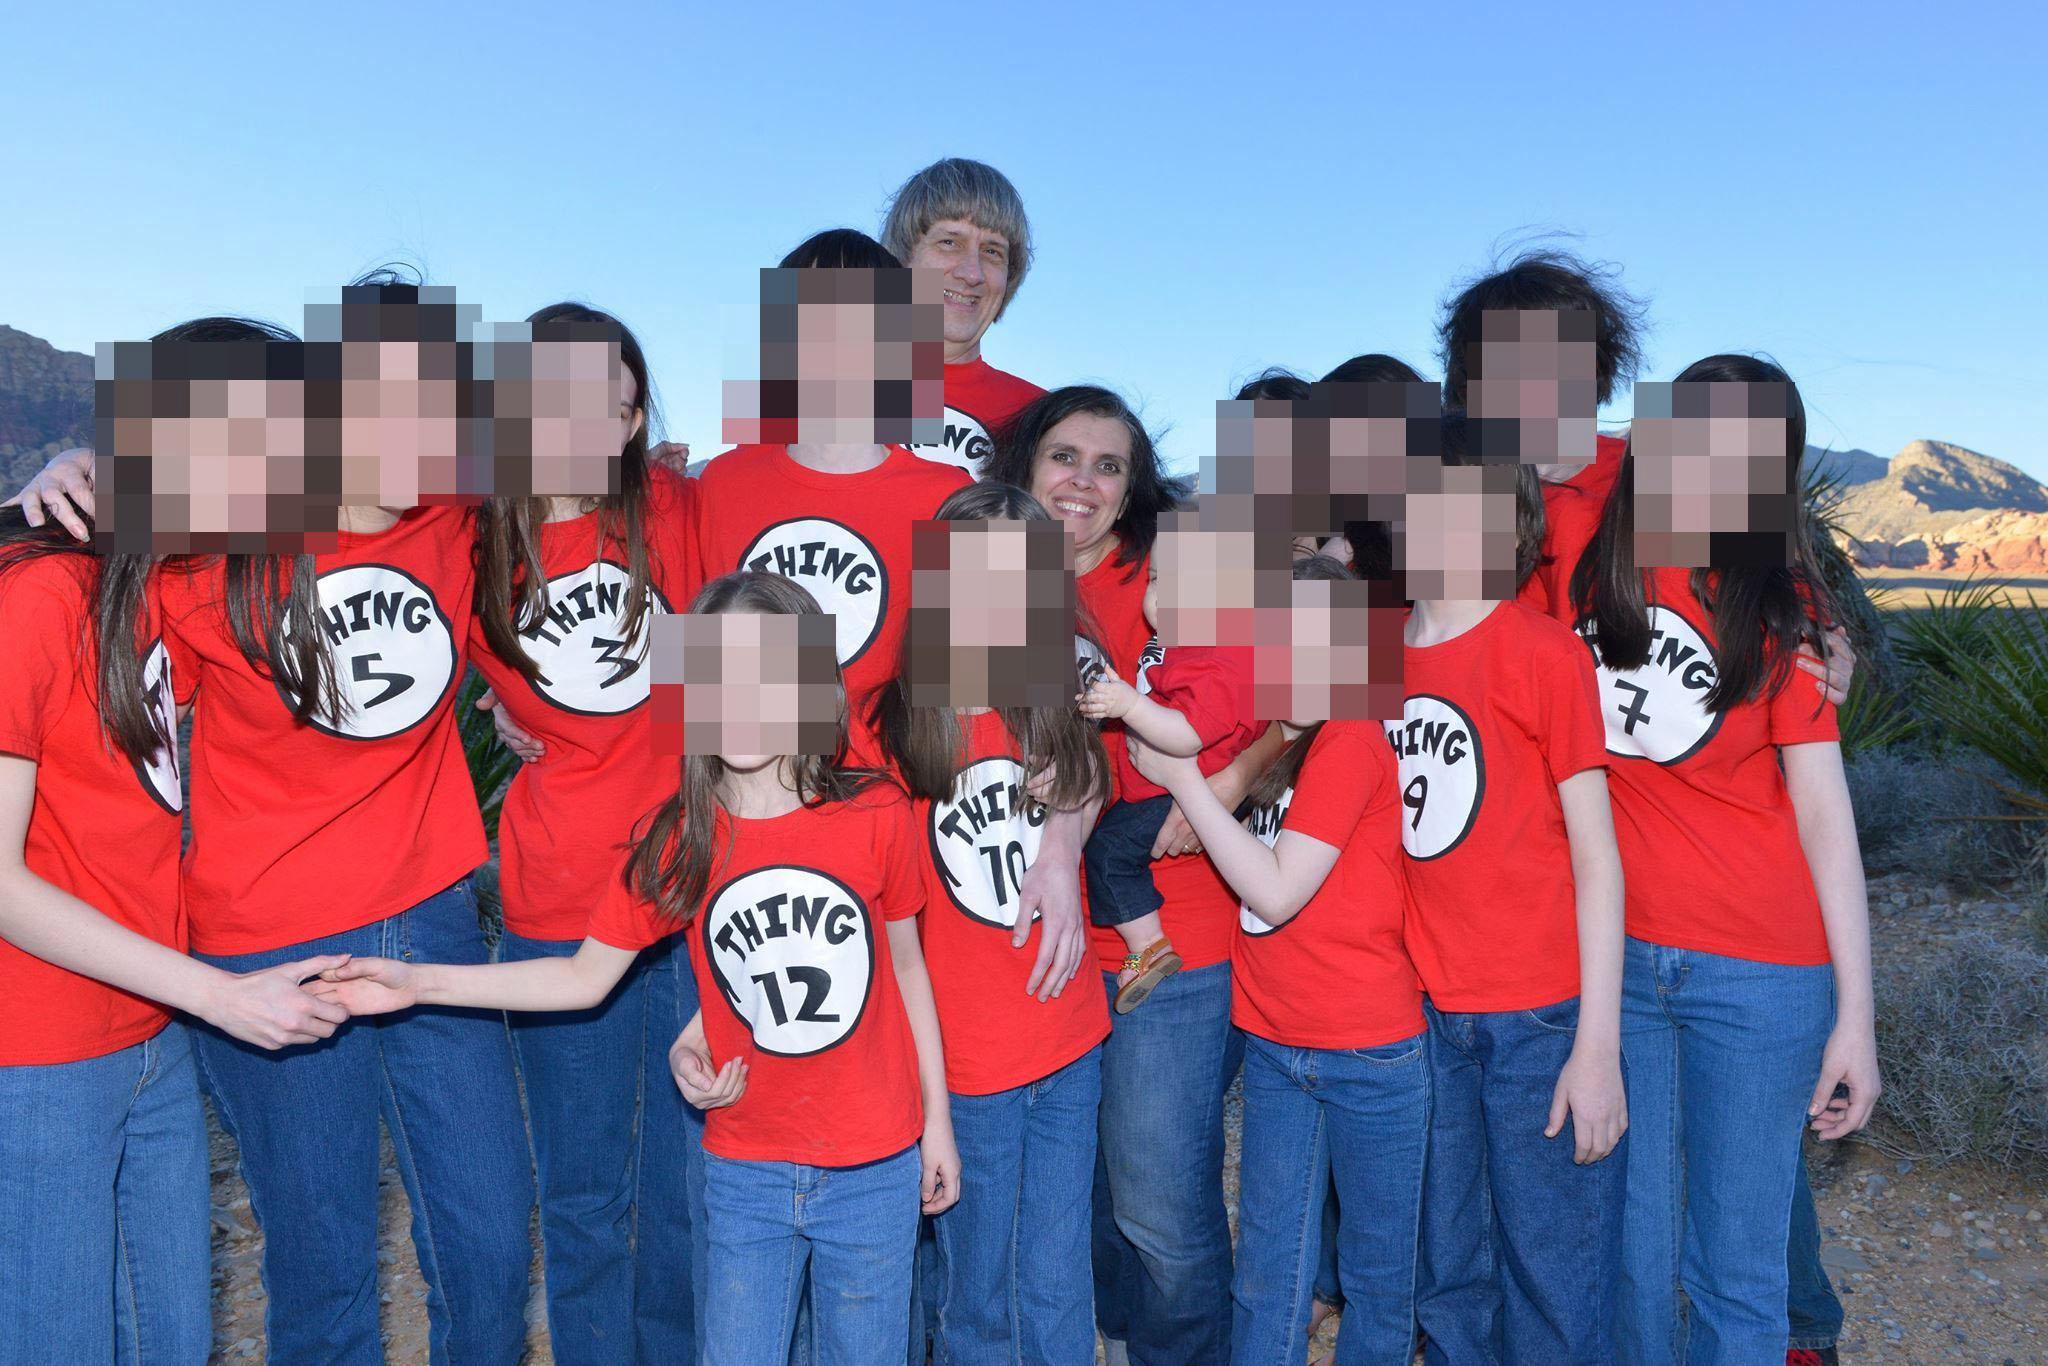 Turpin family – Cops 'may order DNA testing on the 13 House of Horrors kids to check if they're even related'